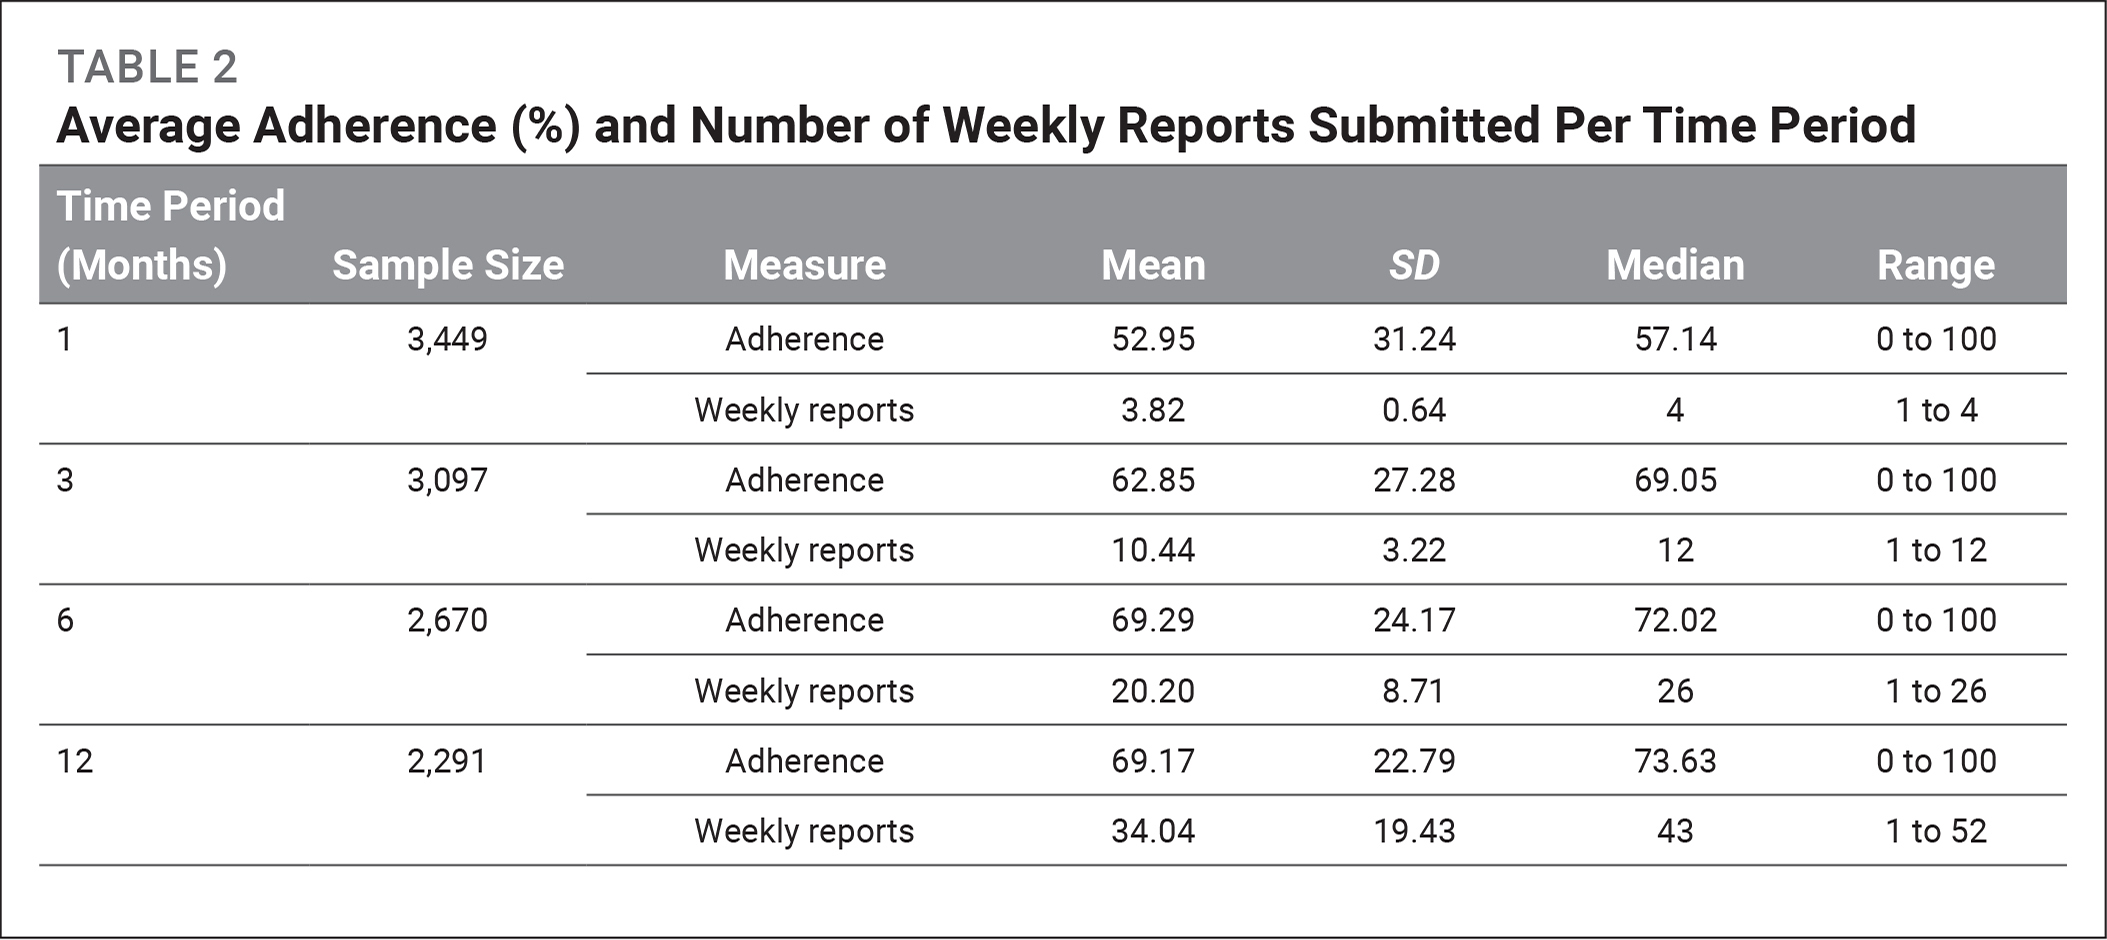 Average Adherence (%) and Number of Weekly Reports Submitted Per Time Period